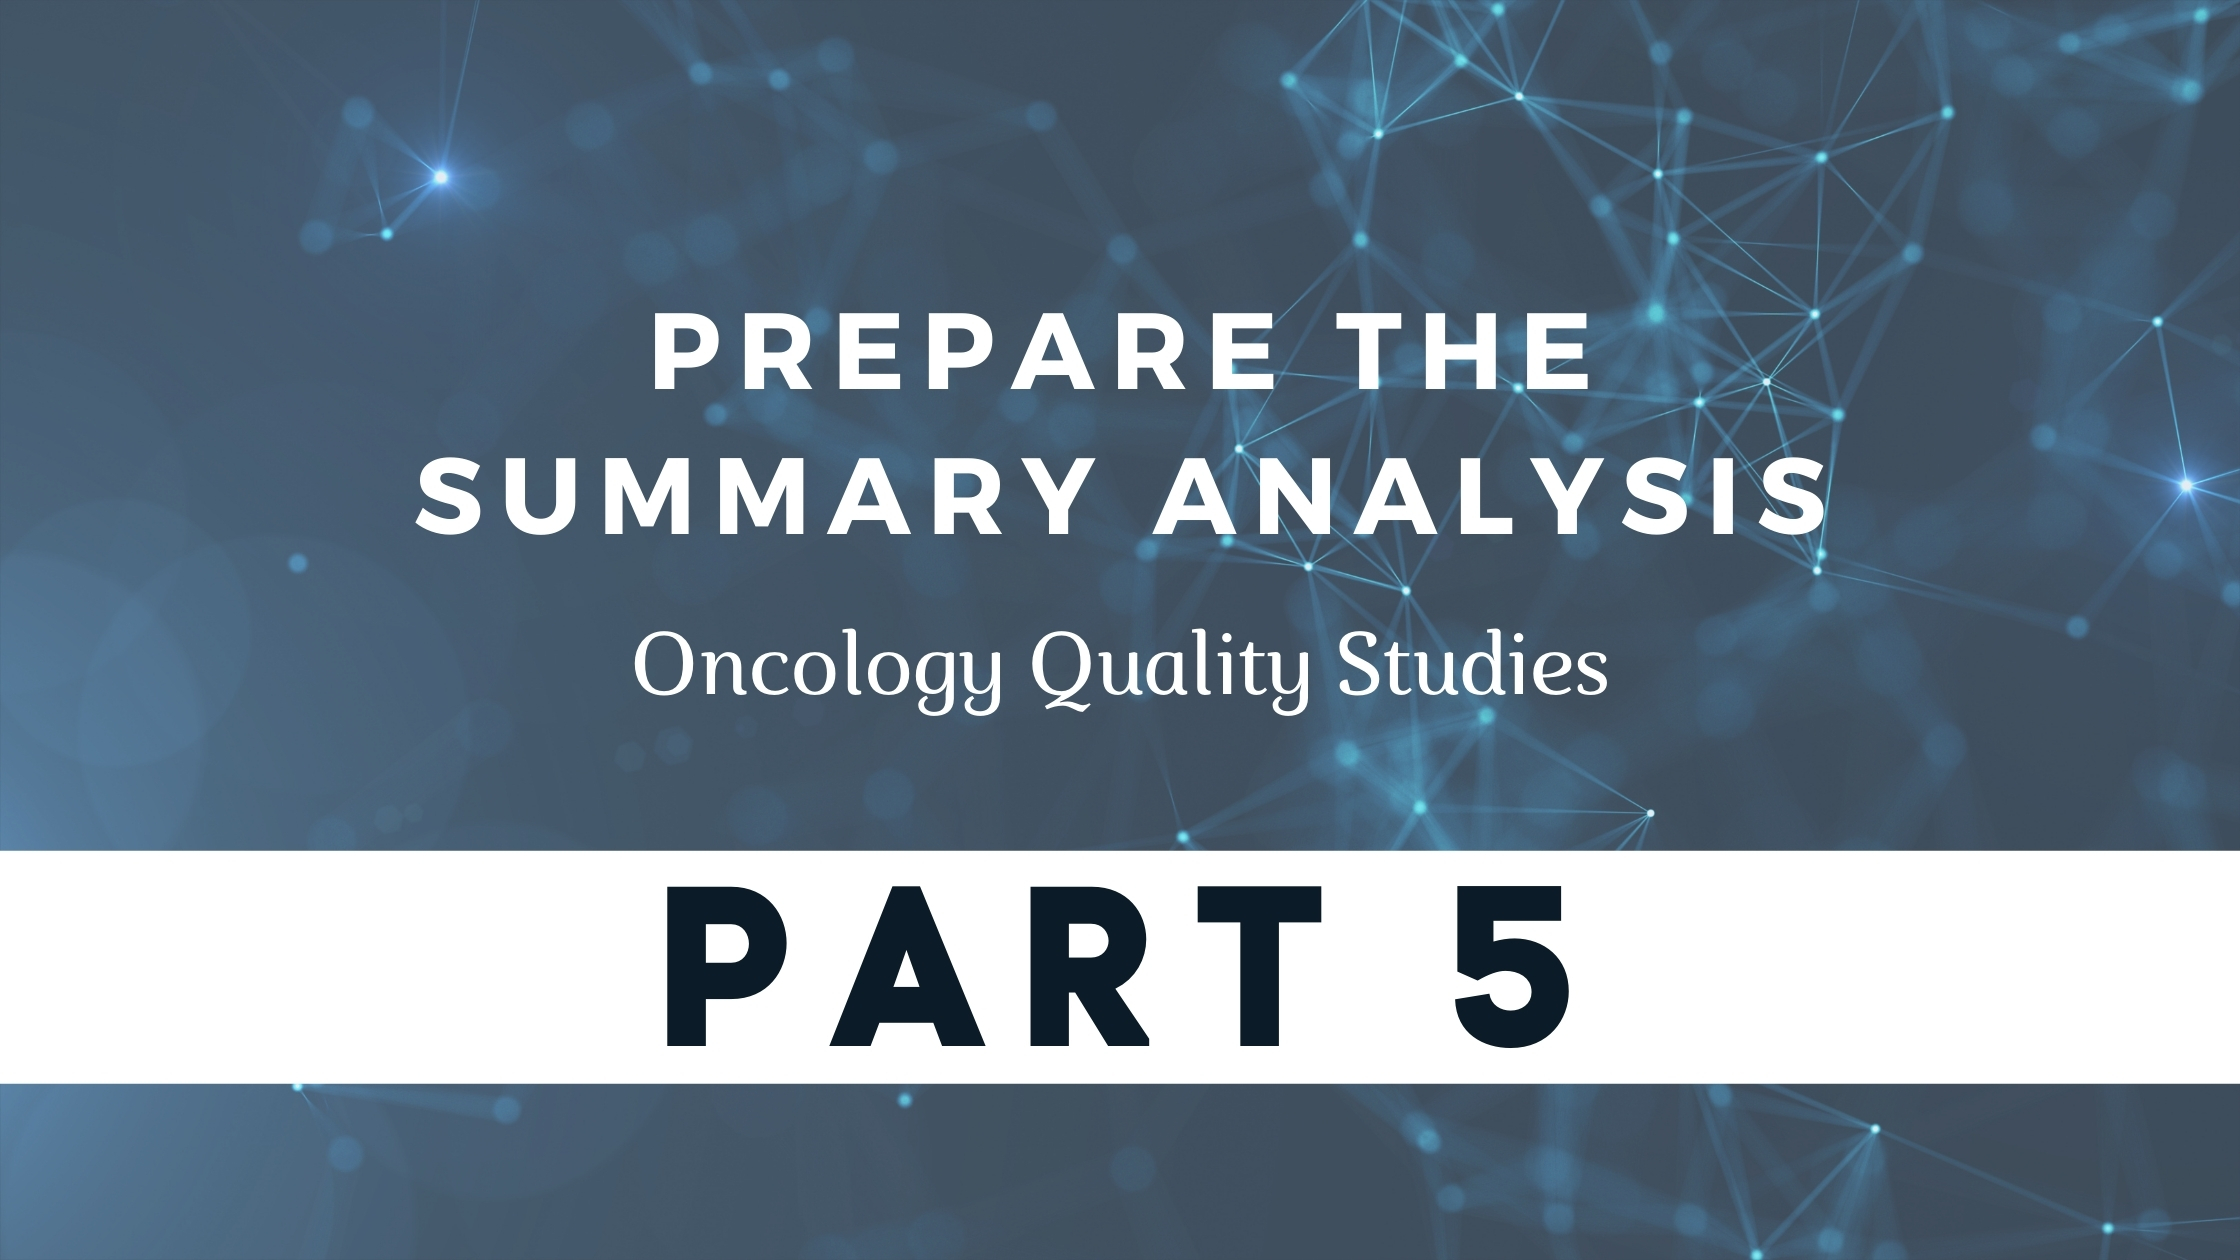 Oncology Quality Studies: Prepare the Summary Analysis